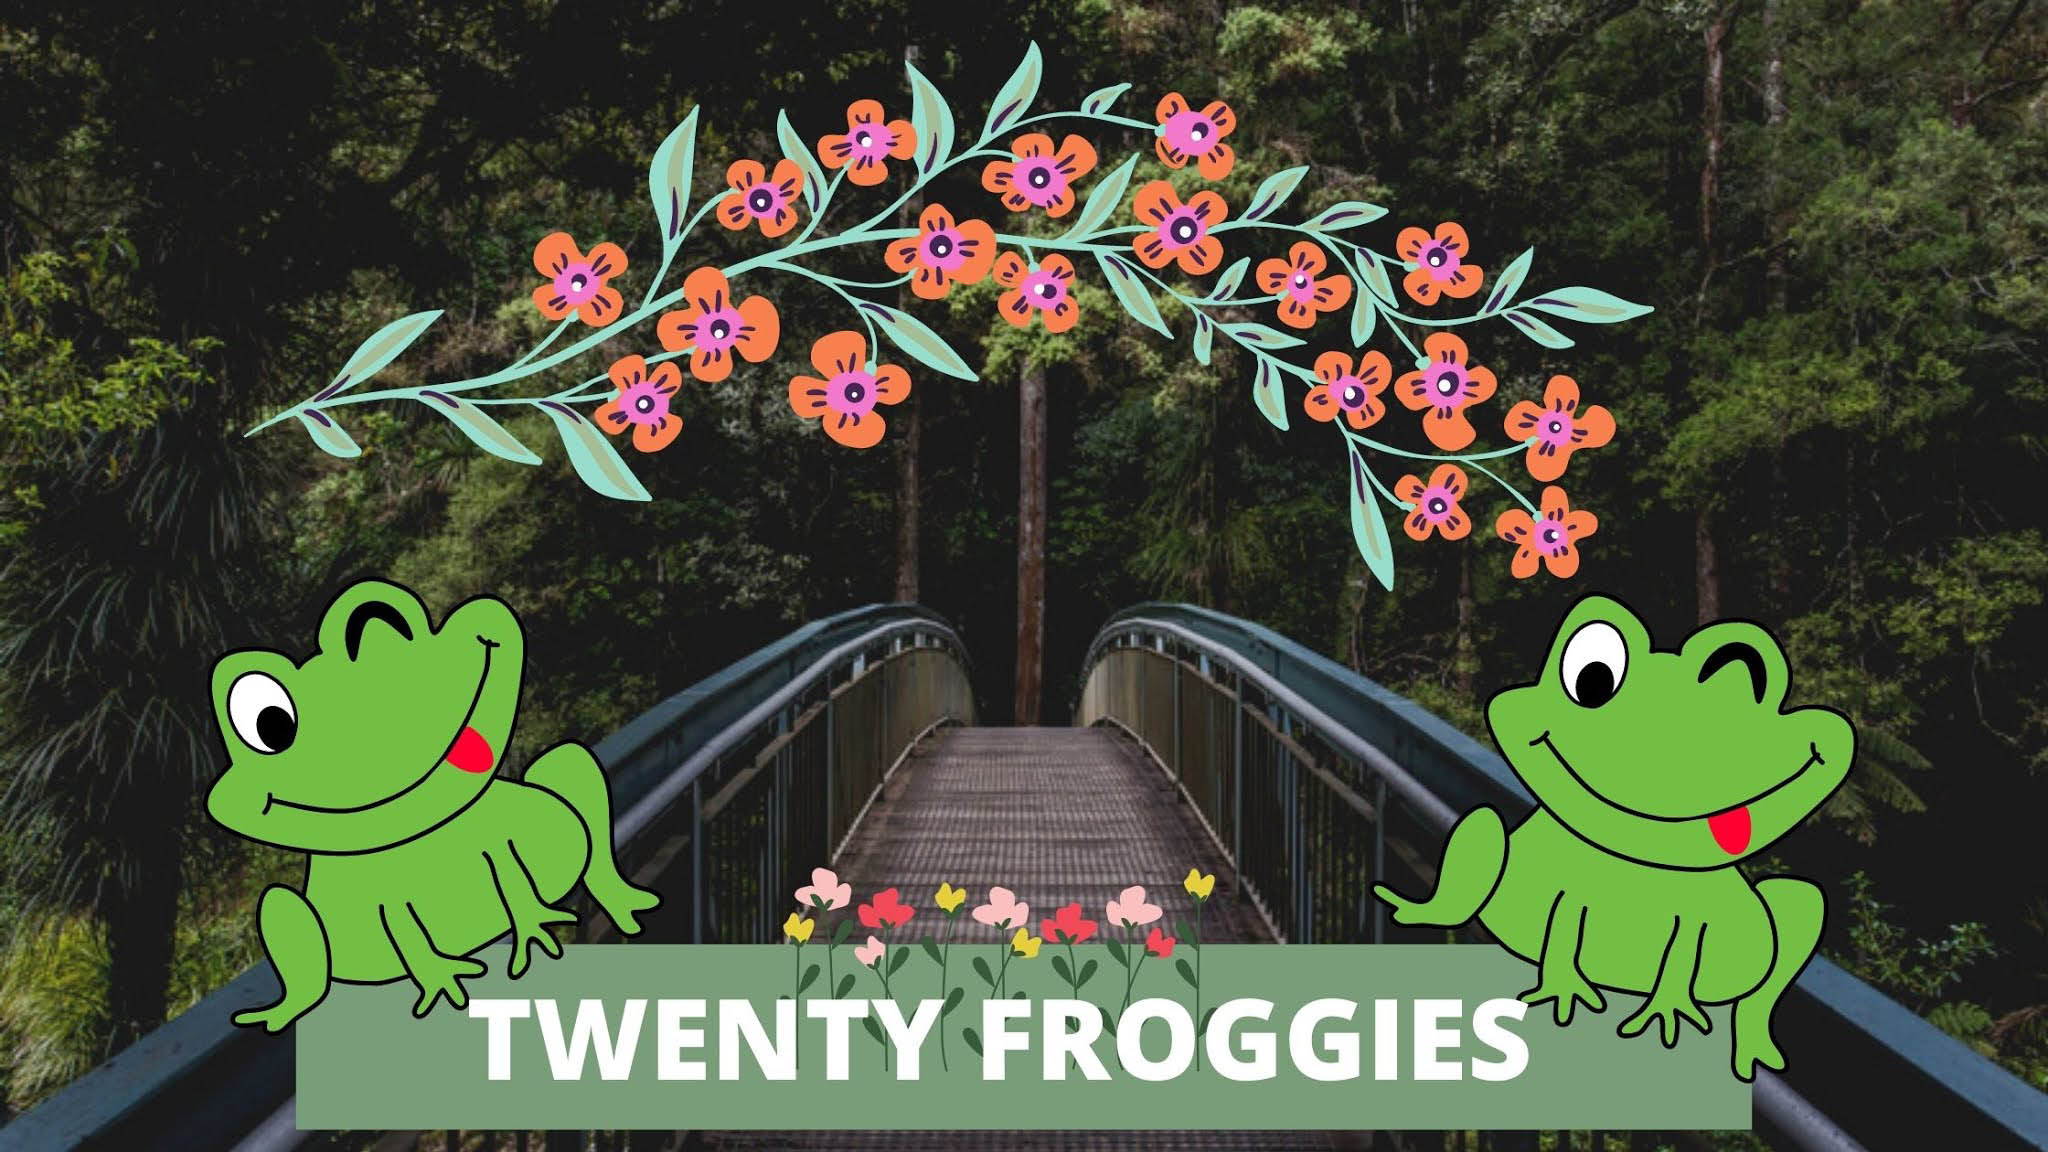 Twenty froggies all questions and answers